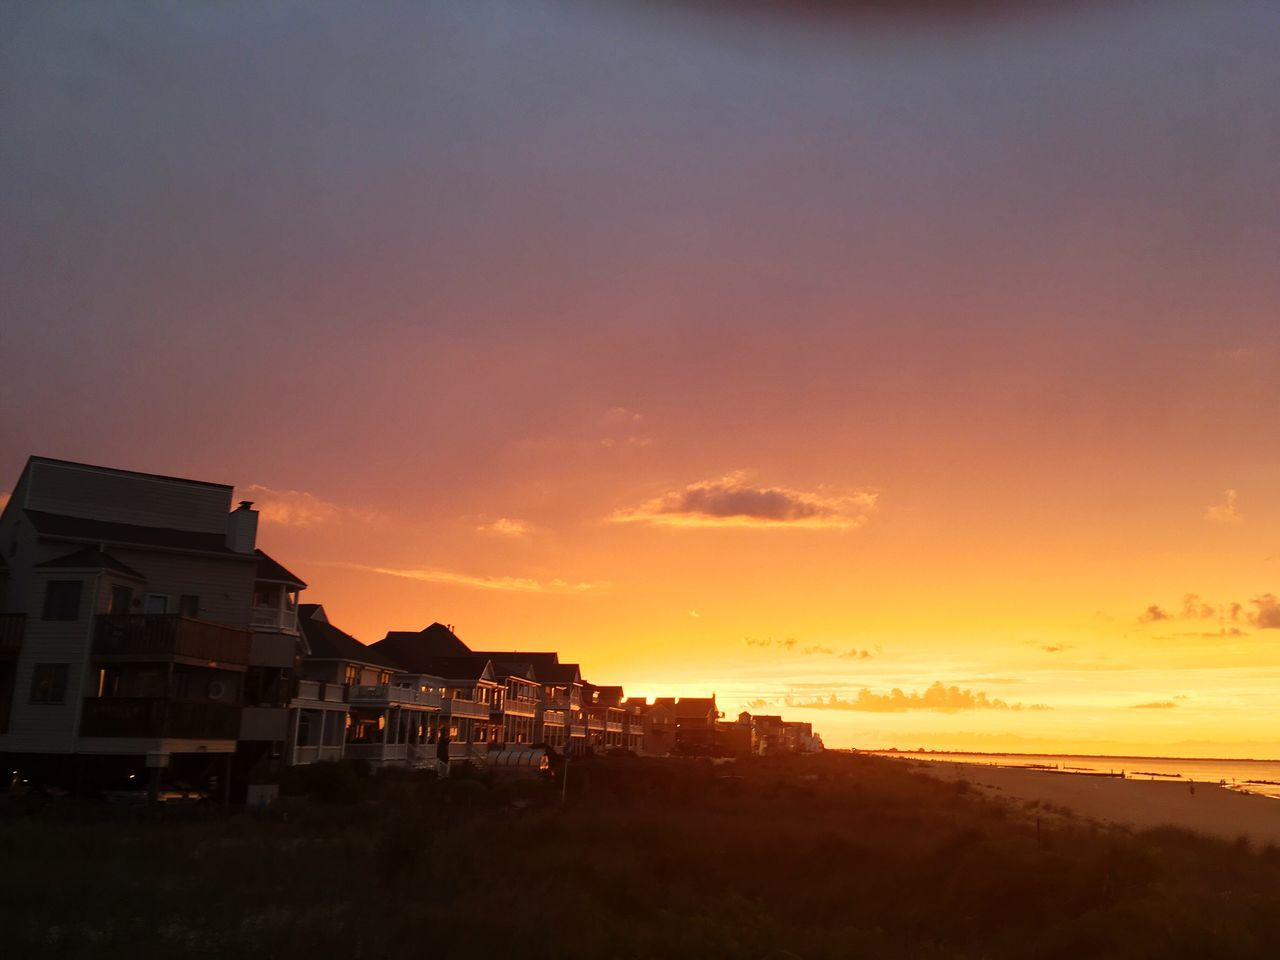 sunset, architecture, building exterior, built structure, sky, house, outdoors, no people, beauty in nature, nature, city, day